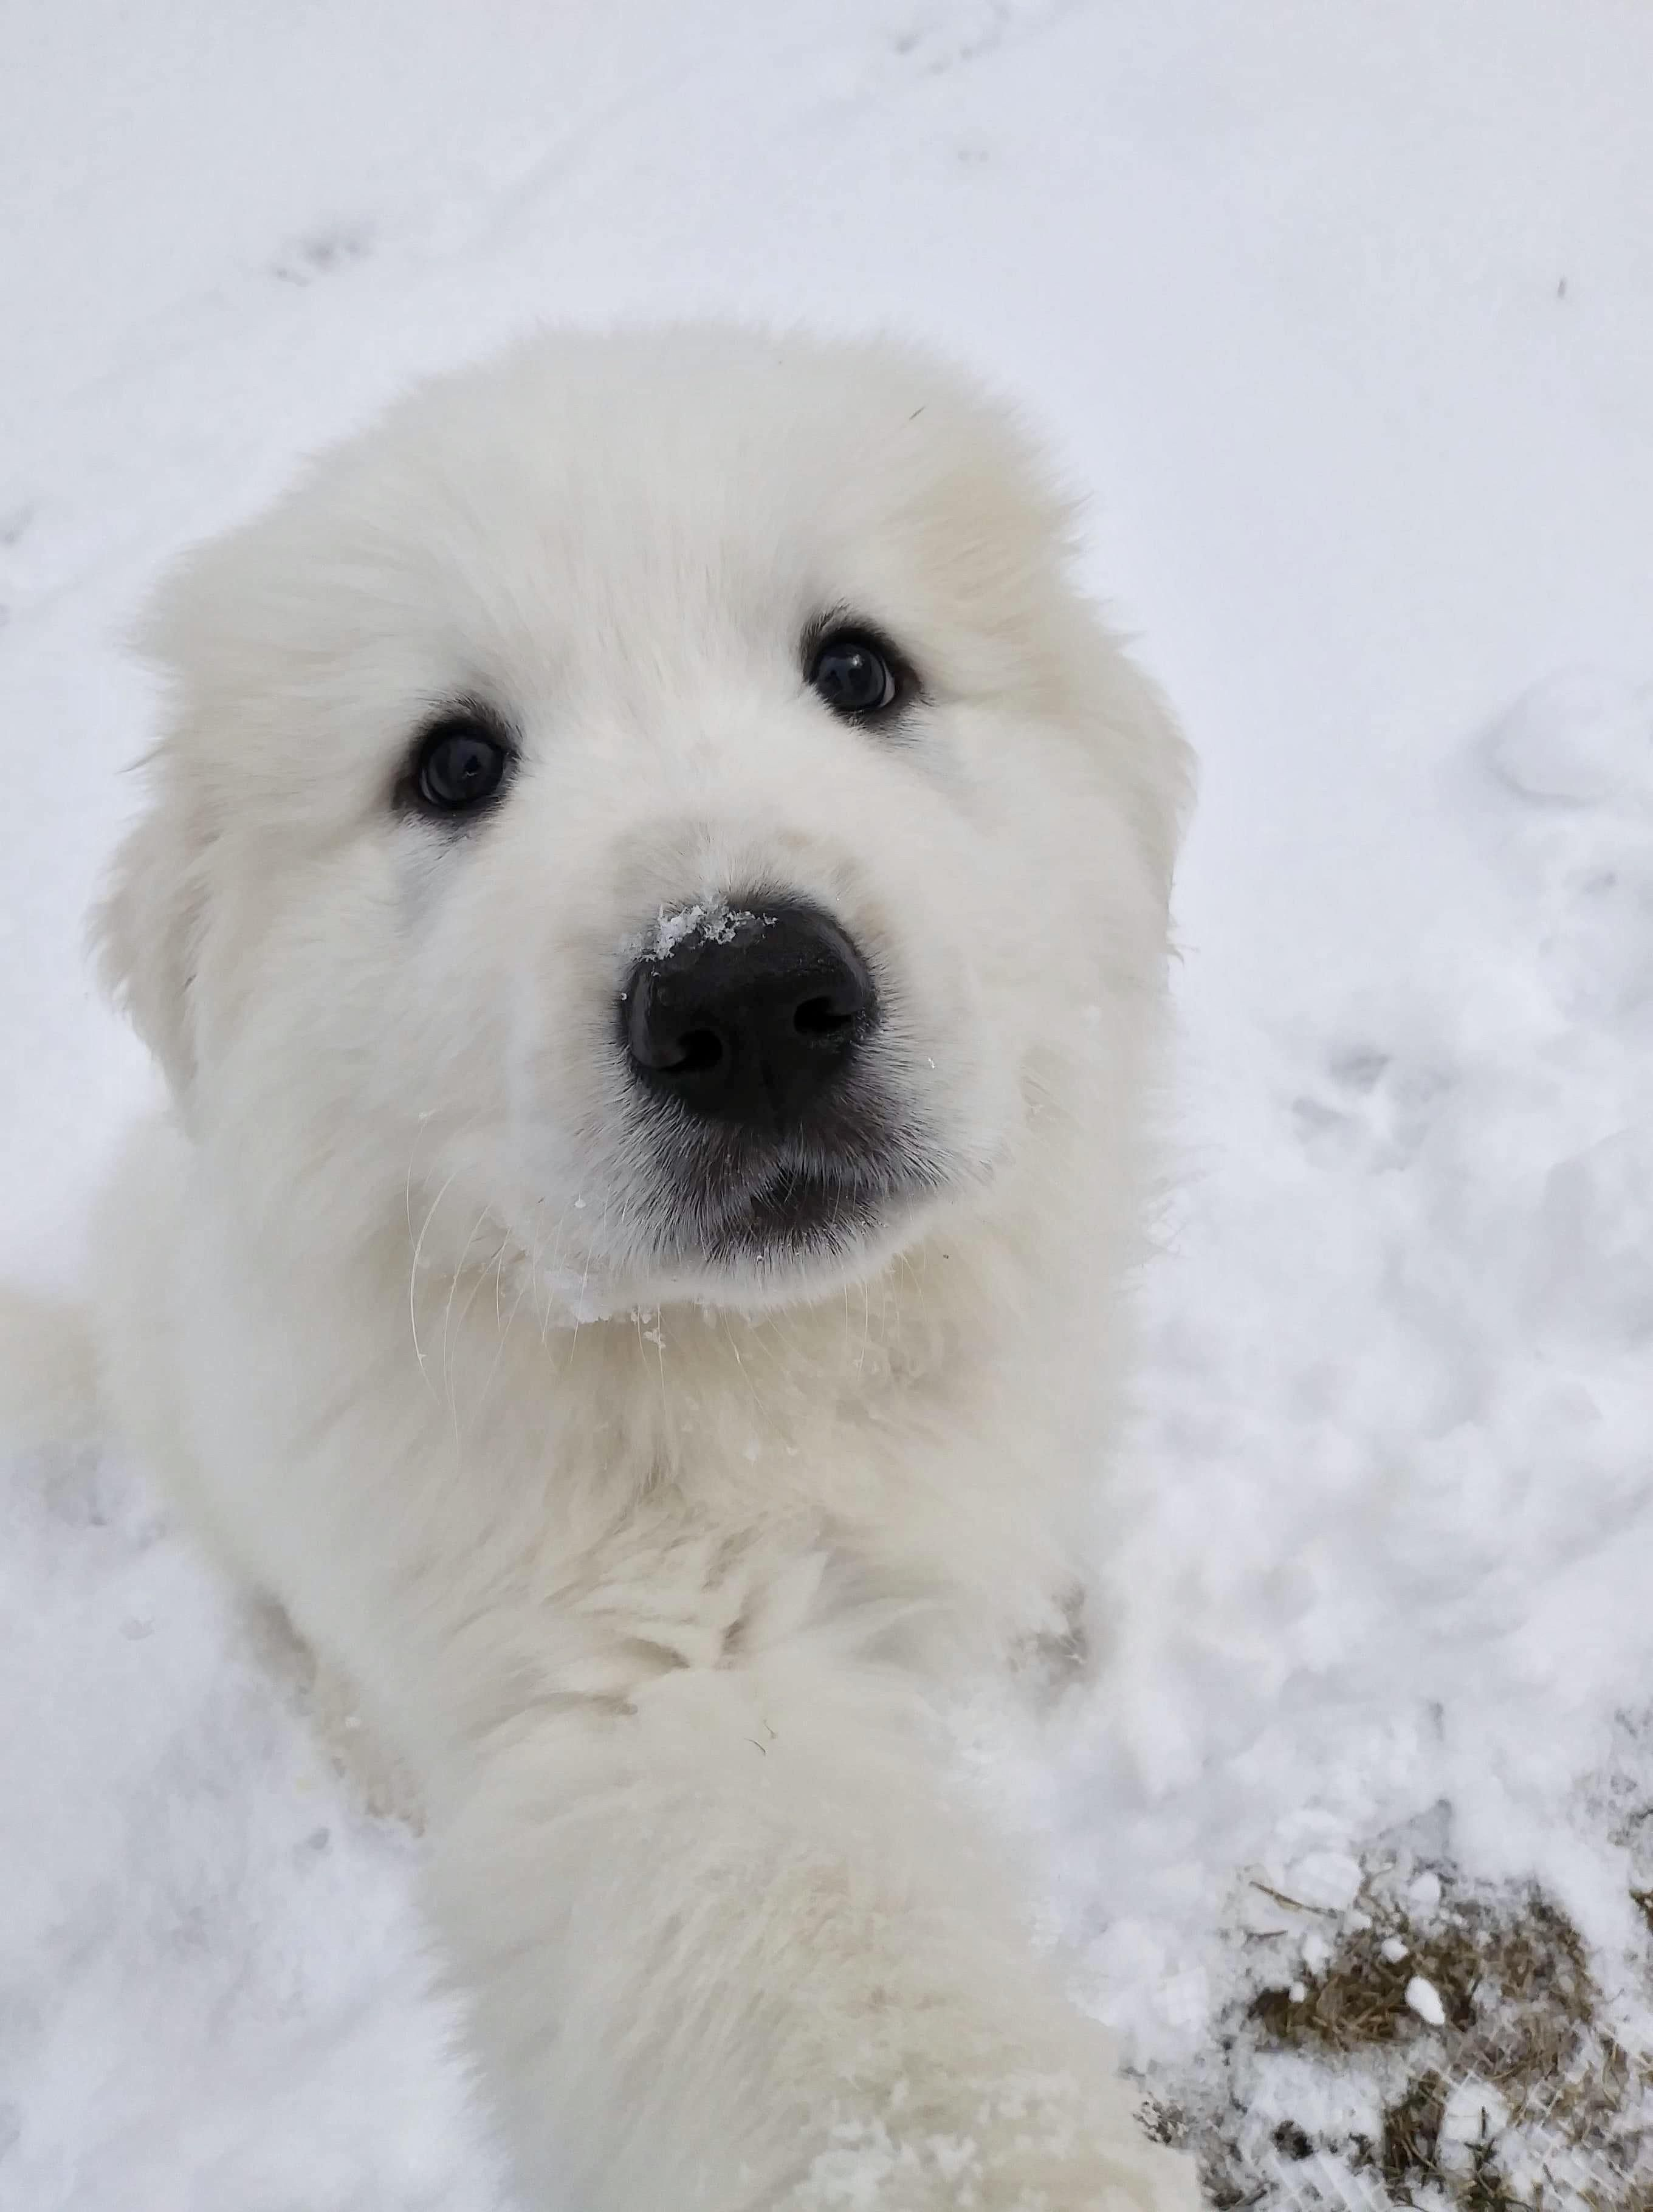 Pin By Sevienglacelle On Pets Great Pyrenees Puppy Great